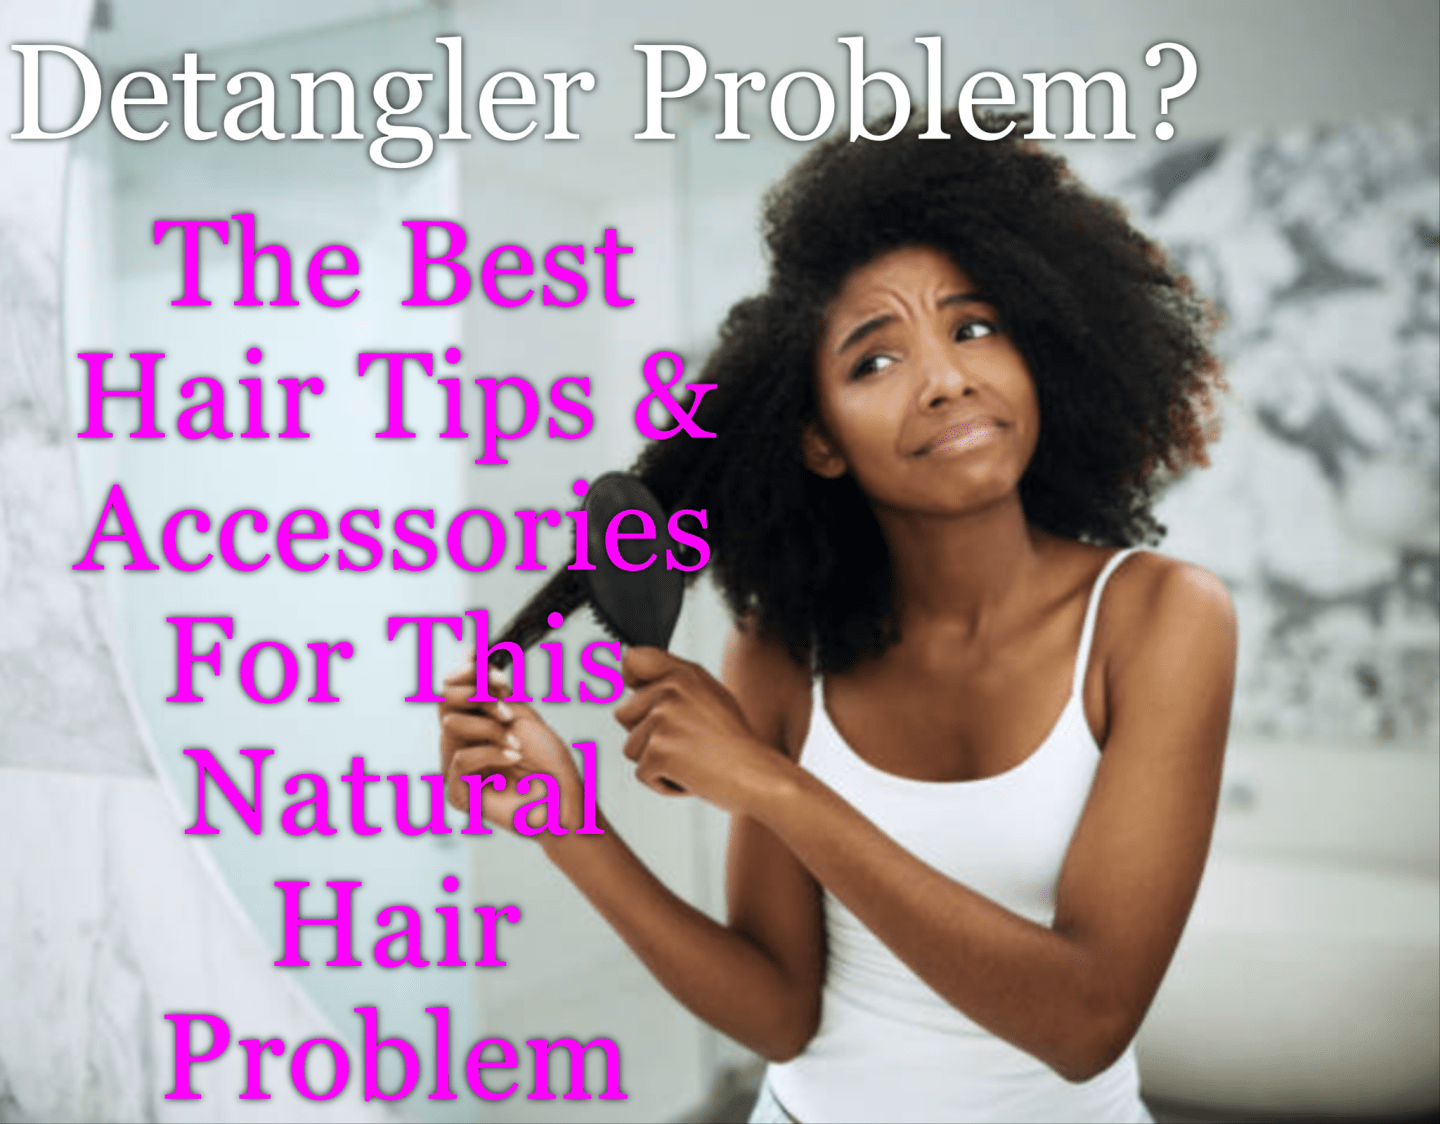 Detangler Problem? Best Hair Tips & Accessories For This Problem that far too many newbies experience. Need products, solutions and tips? We've got 'em!